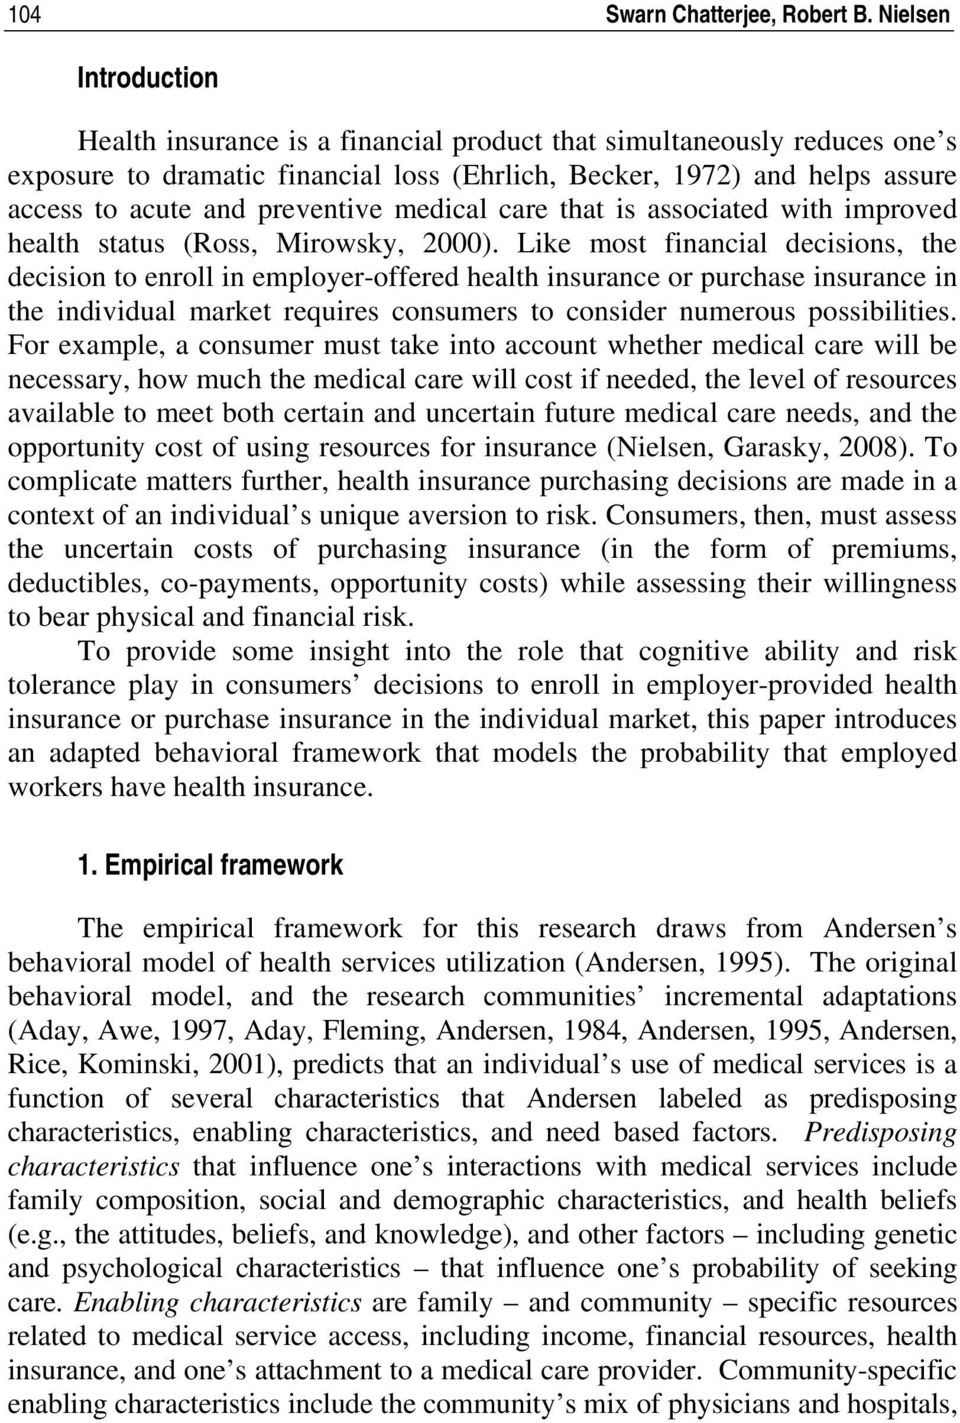 preventive medical care that is associated with improved health status (Ross, Mirowsky, 2000).